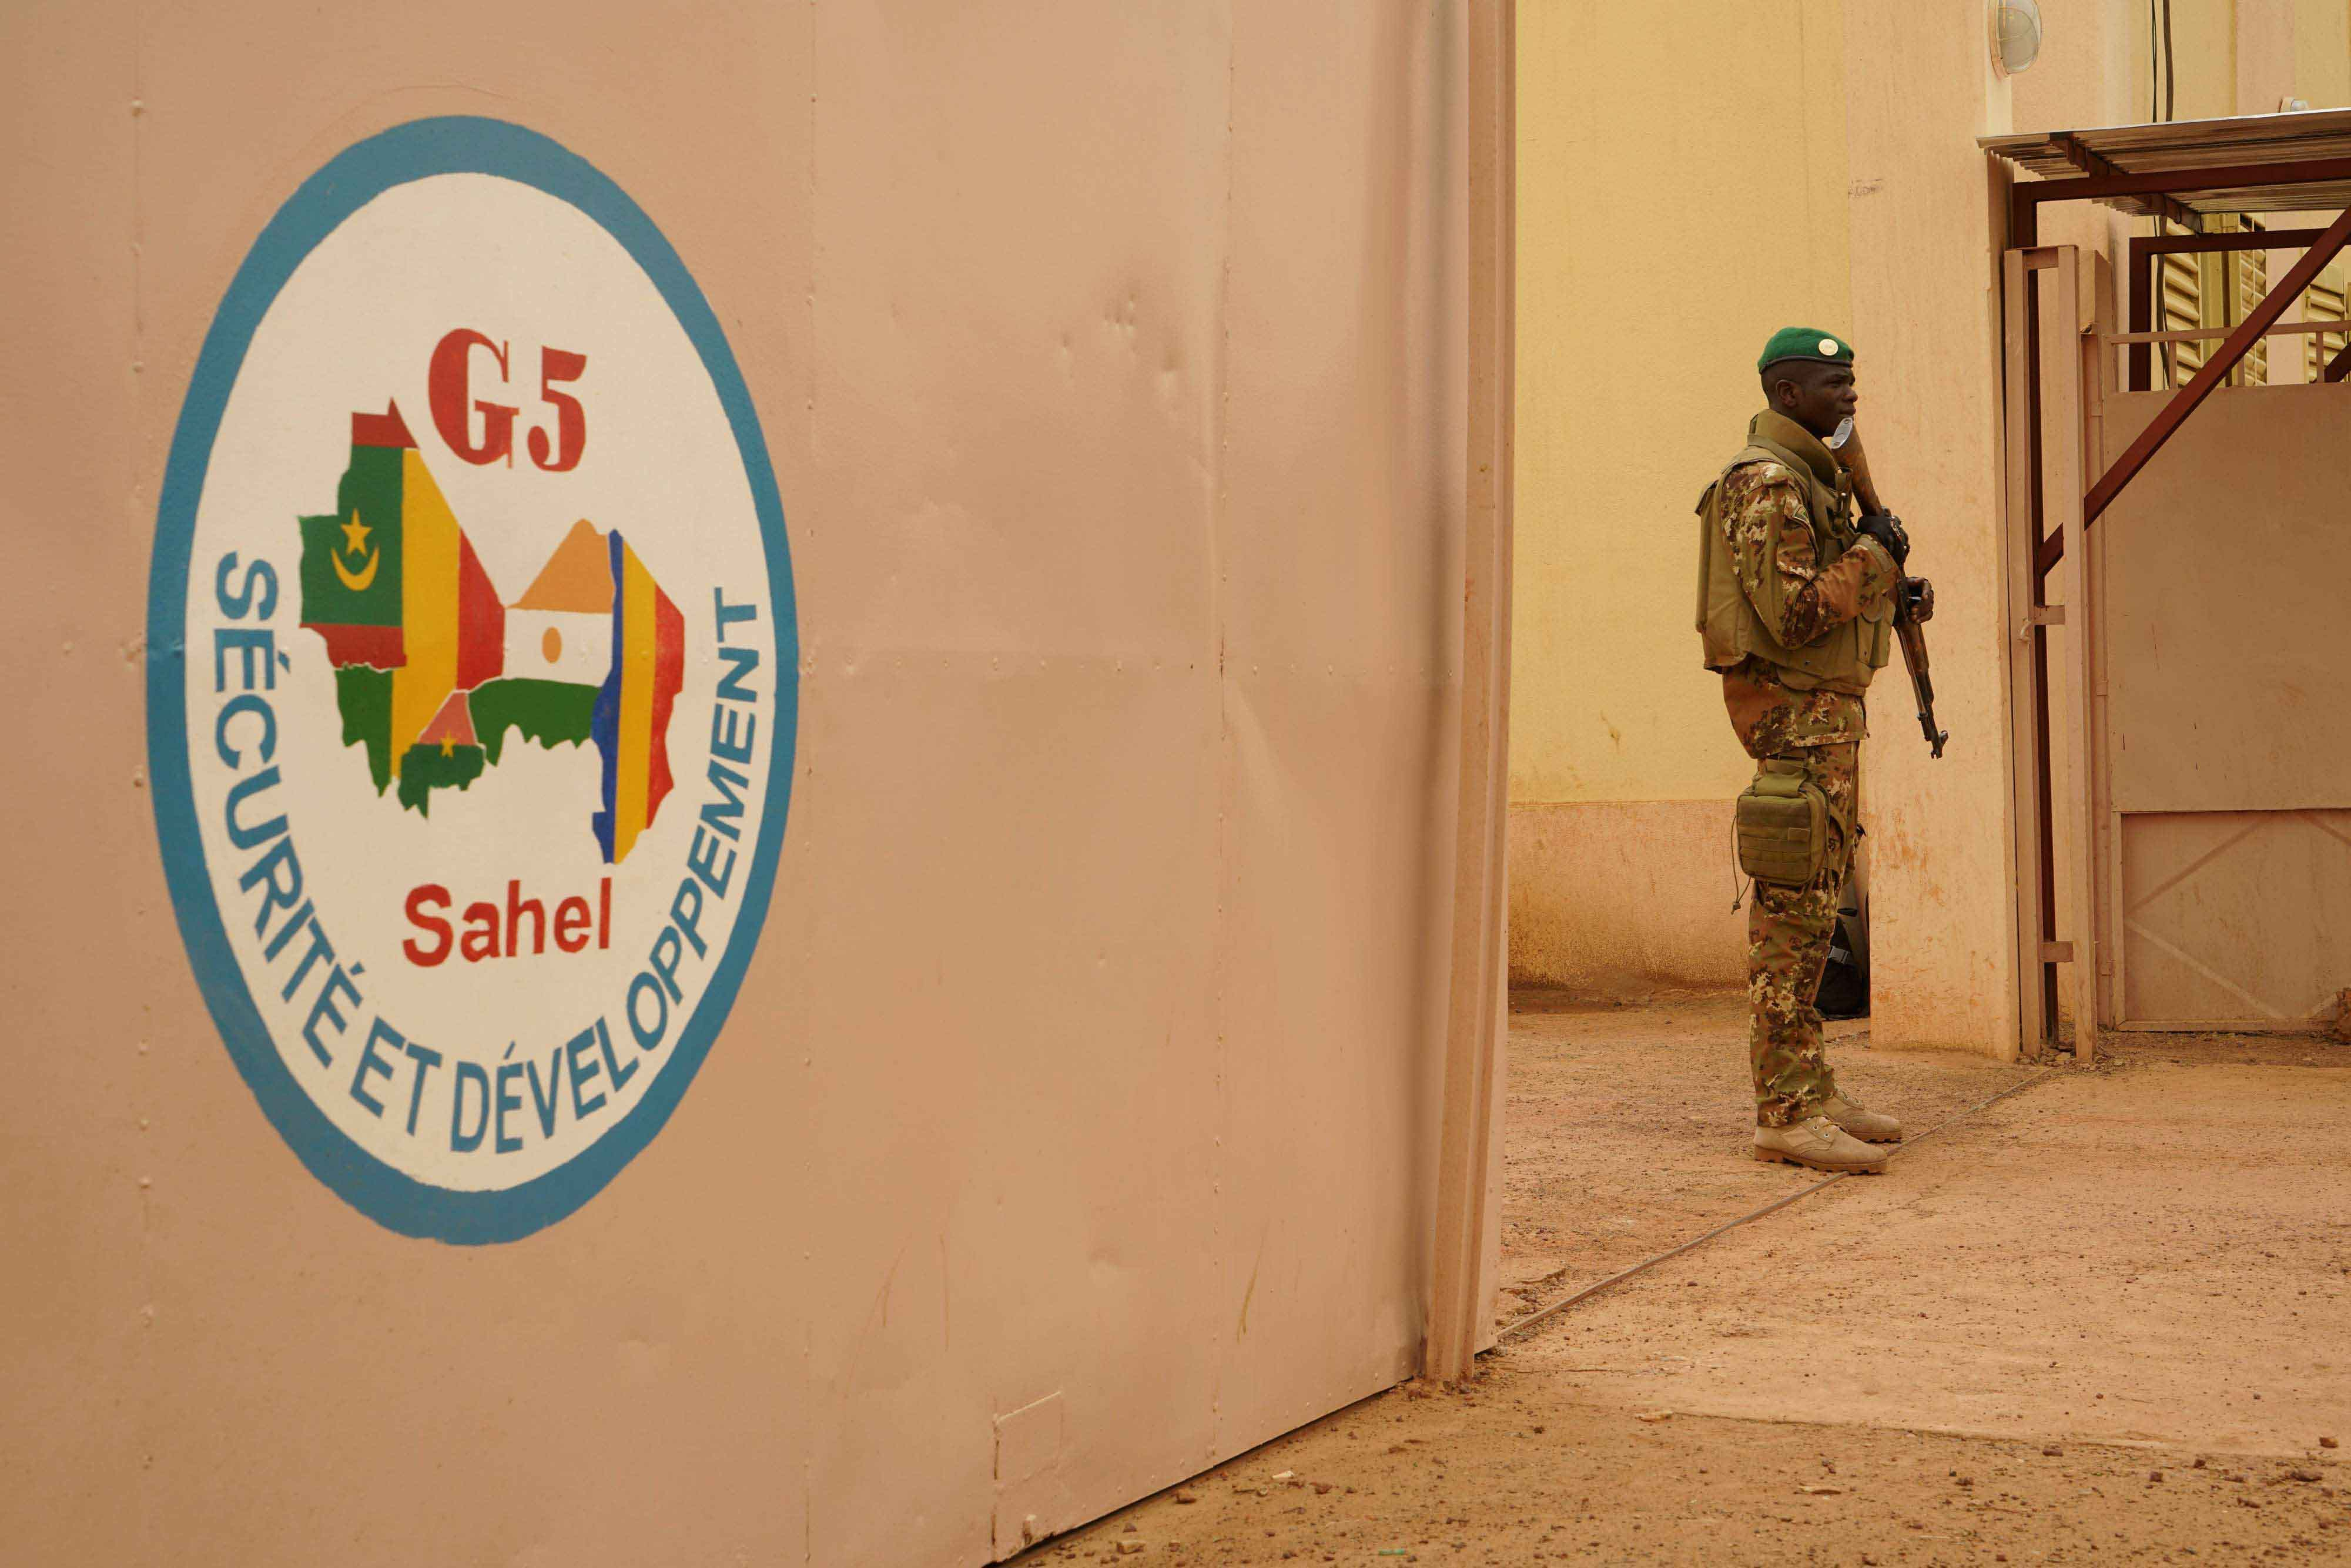 A Malian Army soldier stands guard at the entrance of the G5 Sahel headquarters in Sevare, Mali, last May. (AFP)